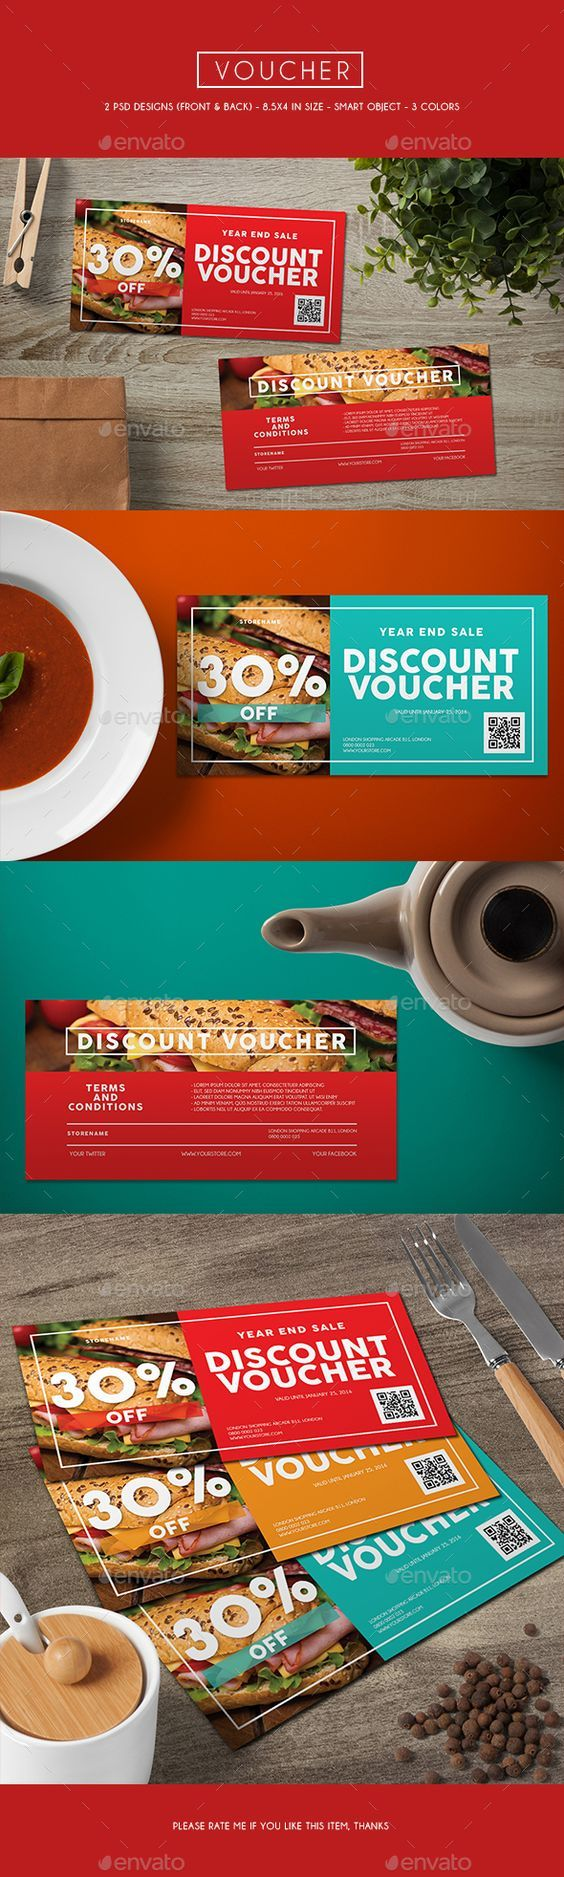 Voucher Card Template PSD #design Download: http://graphicriver.net/item/voucher-card/13376867?ref=ksioks: